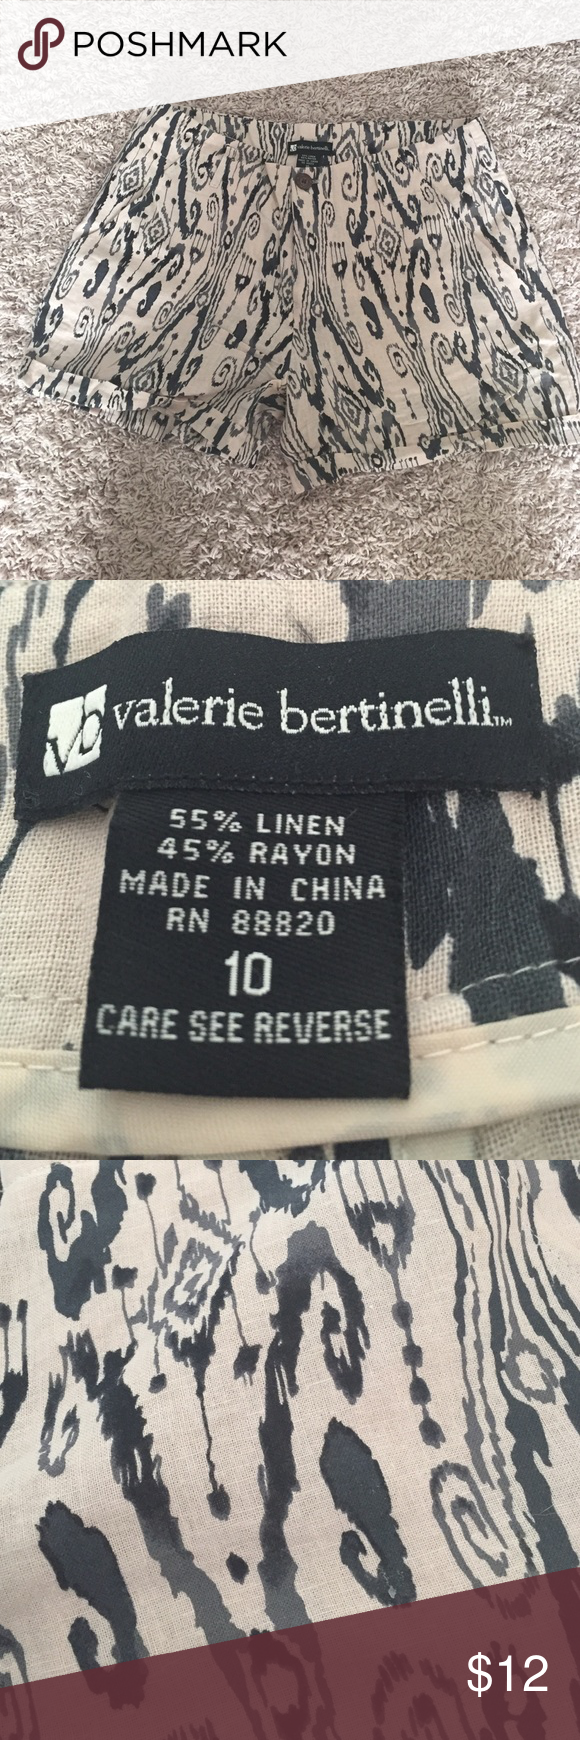 Size 10 patterned shorts Valerie Bertinelli ate teens shorts. Size 10. Valerie Bertinelli Shorts